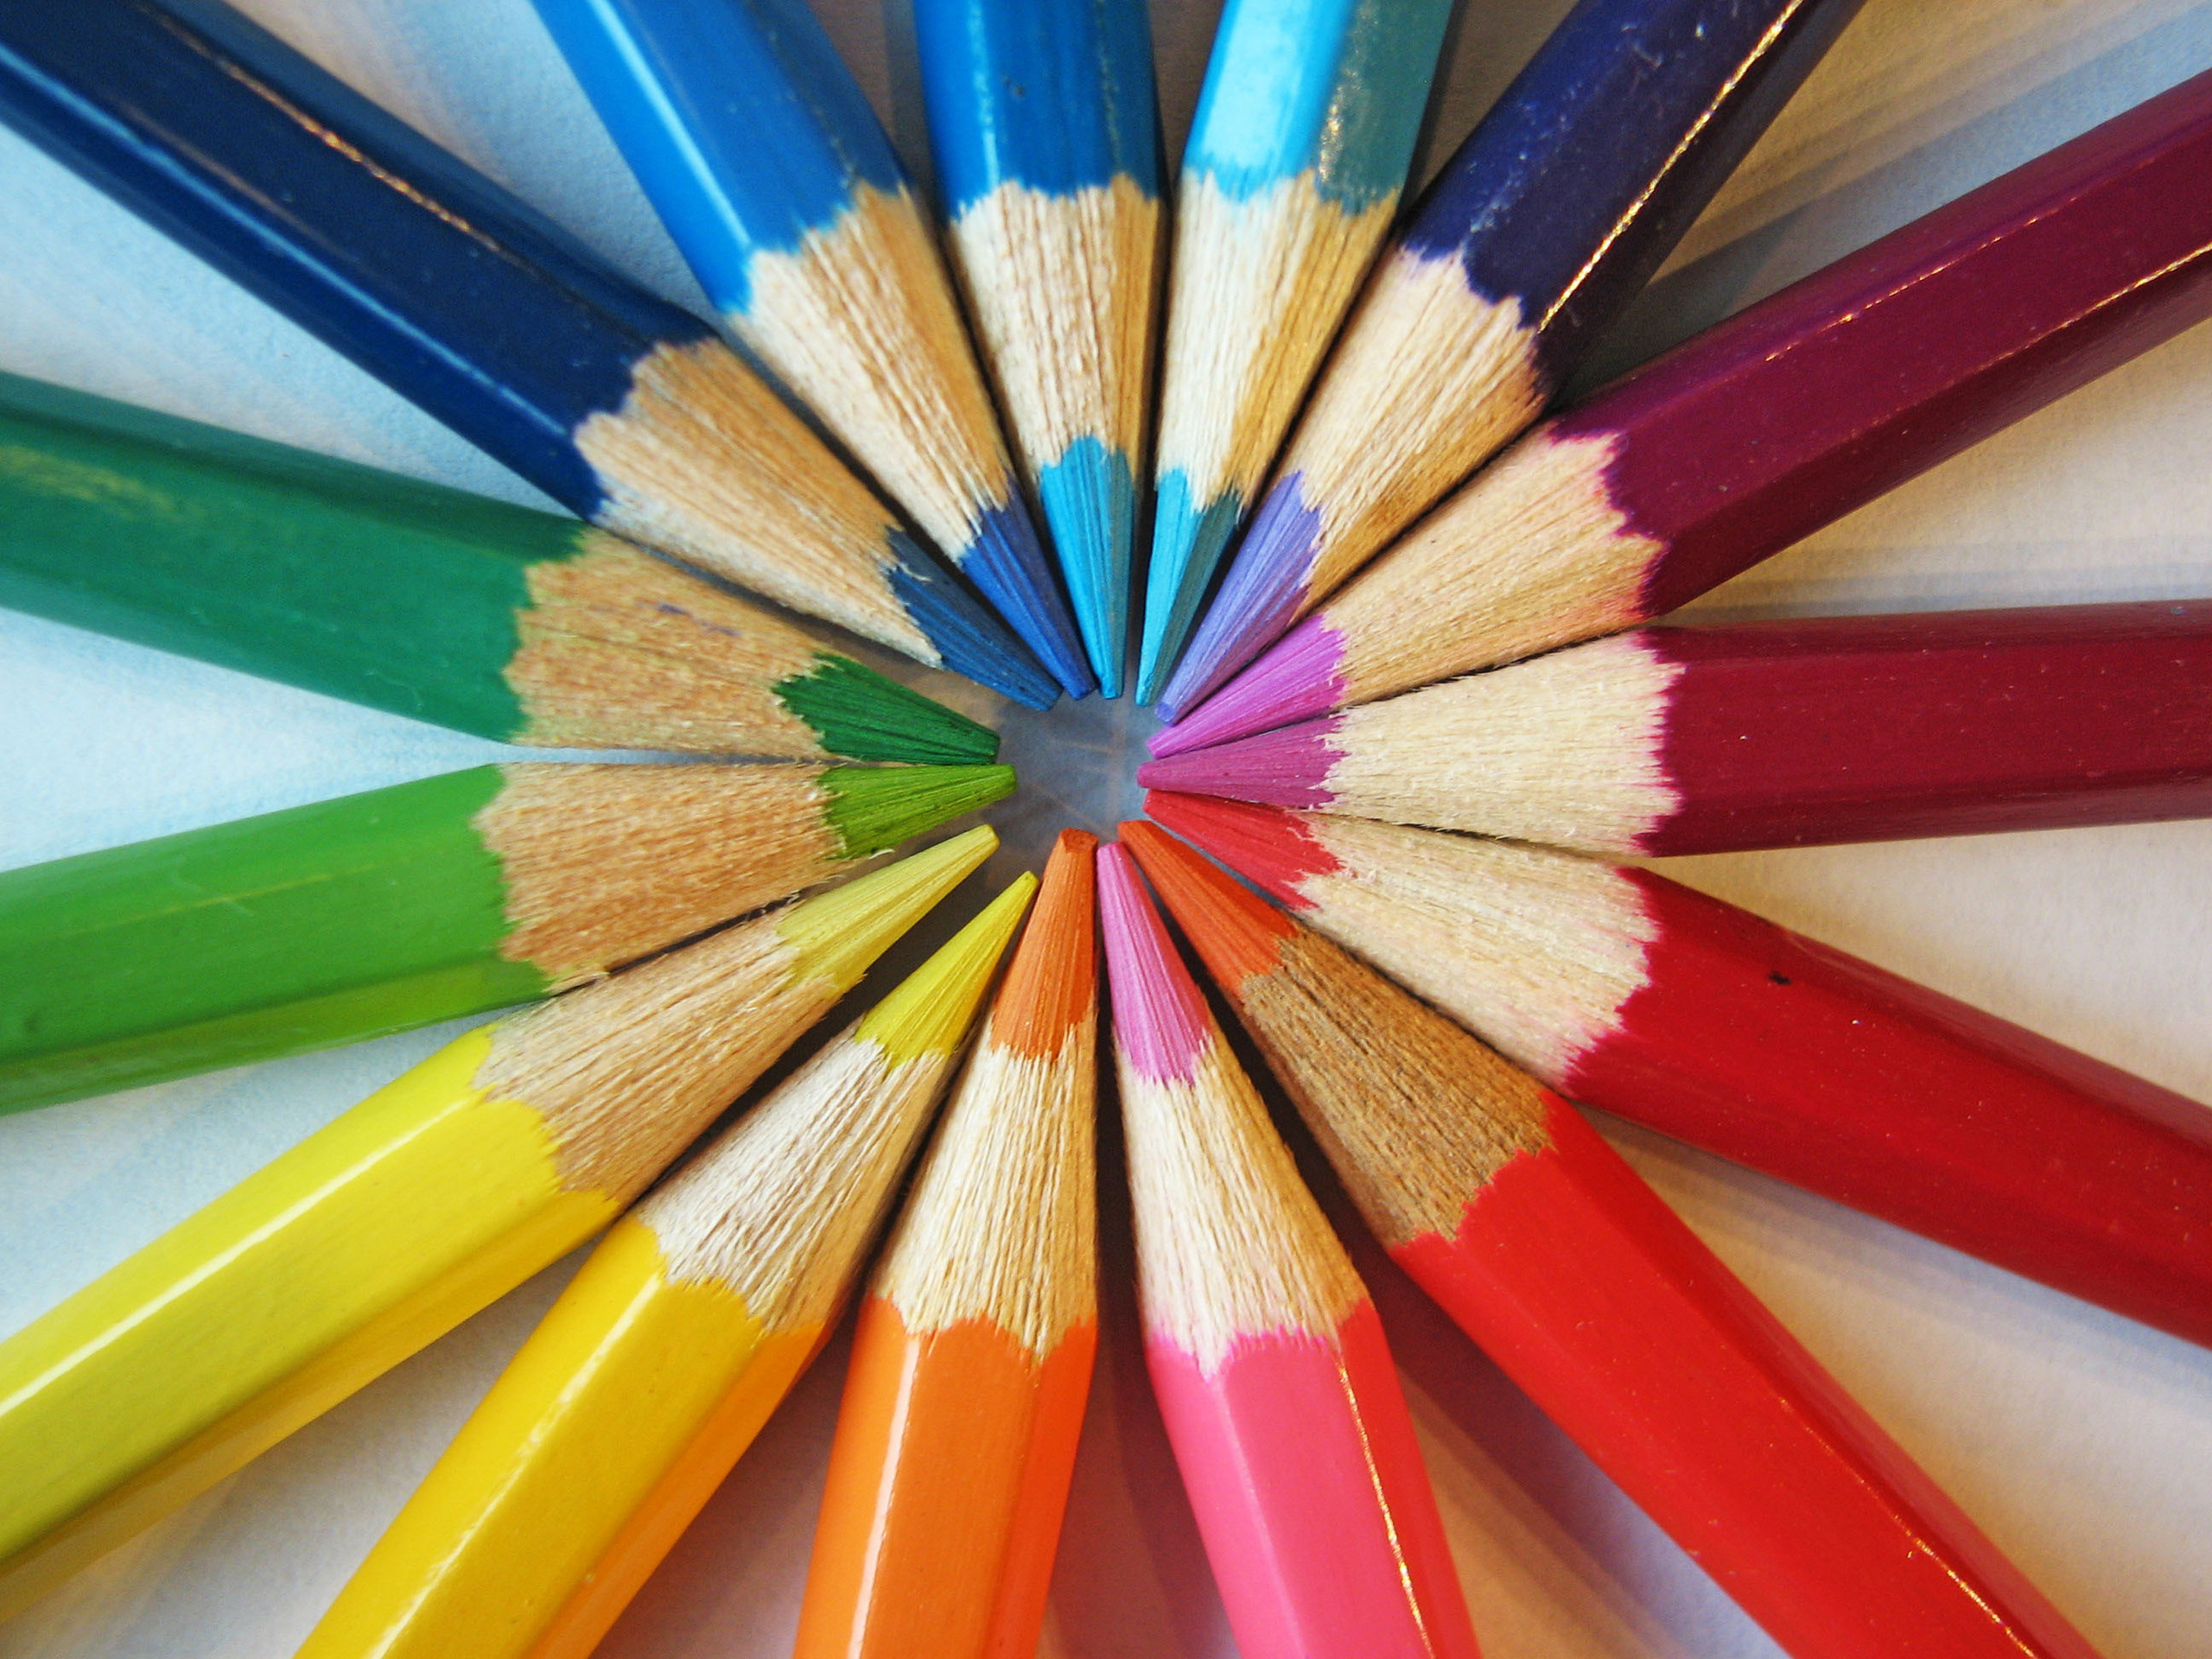 pencils images colored pencils hd wallpaper and background photos